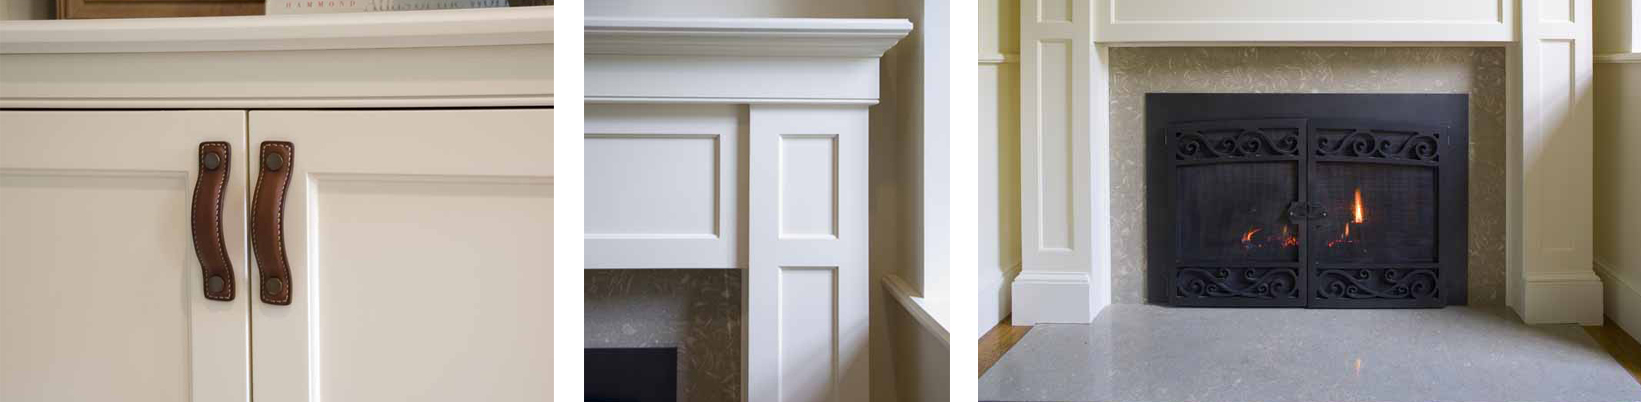 Details of leather cabinet, fireplace mantel and fireplace doors